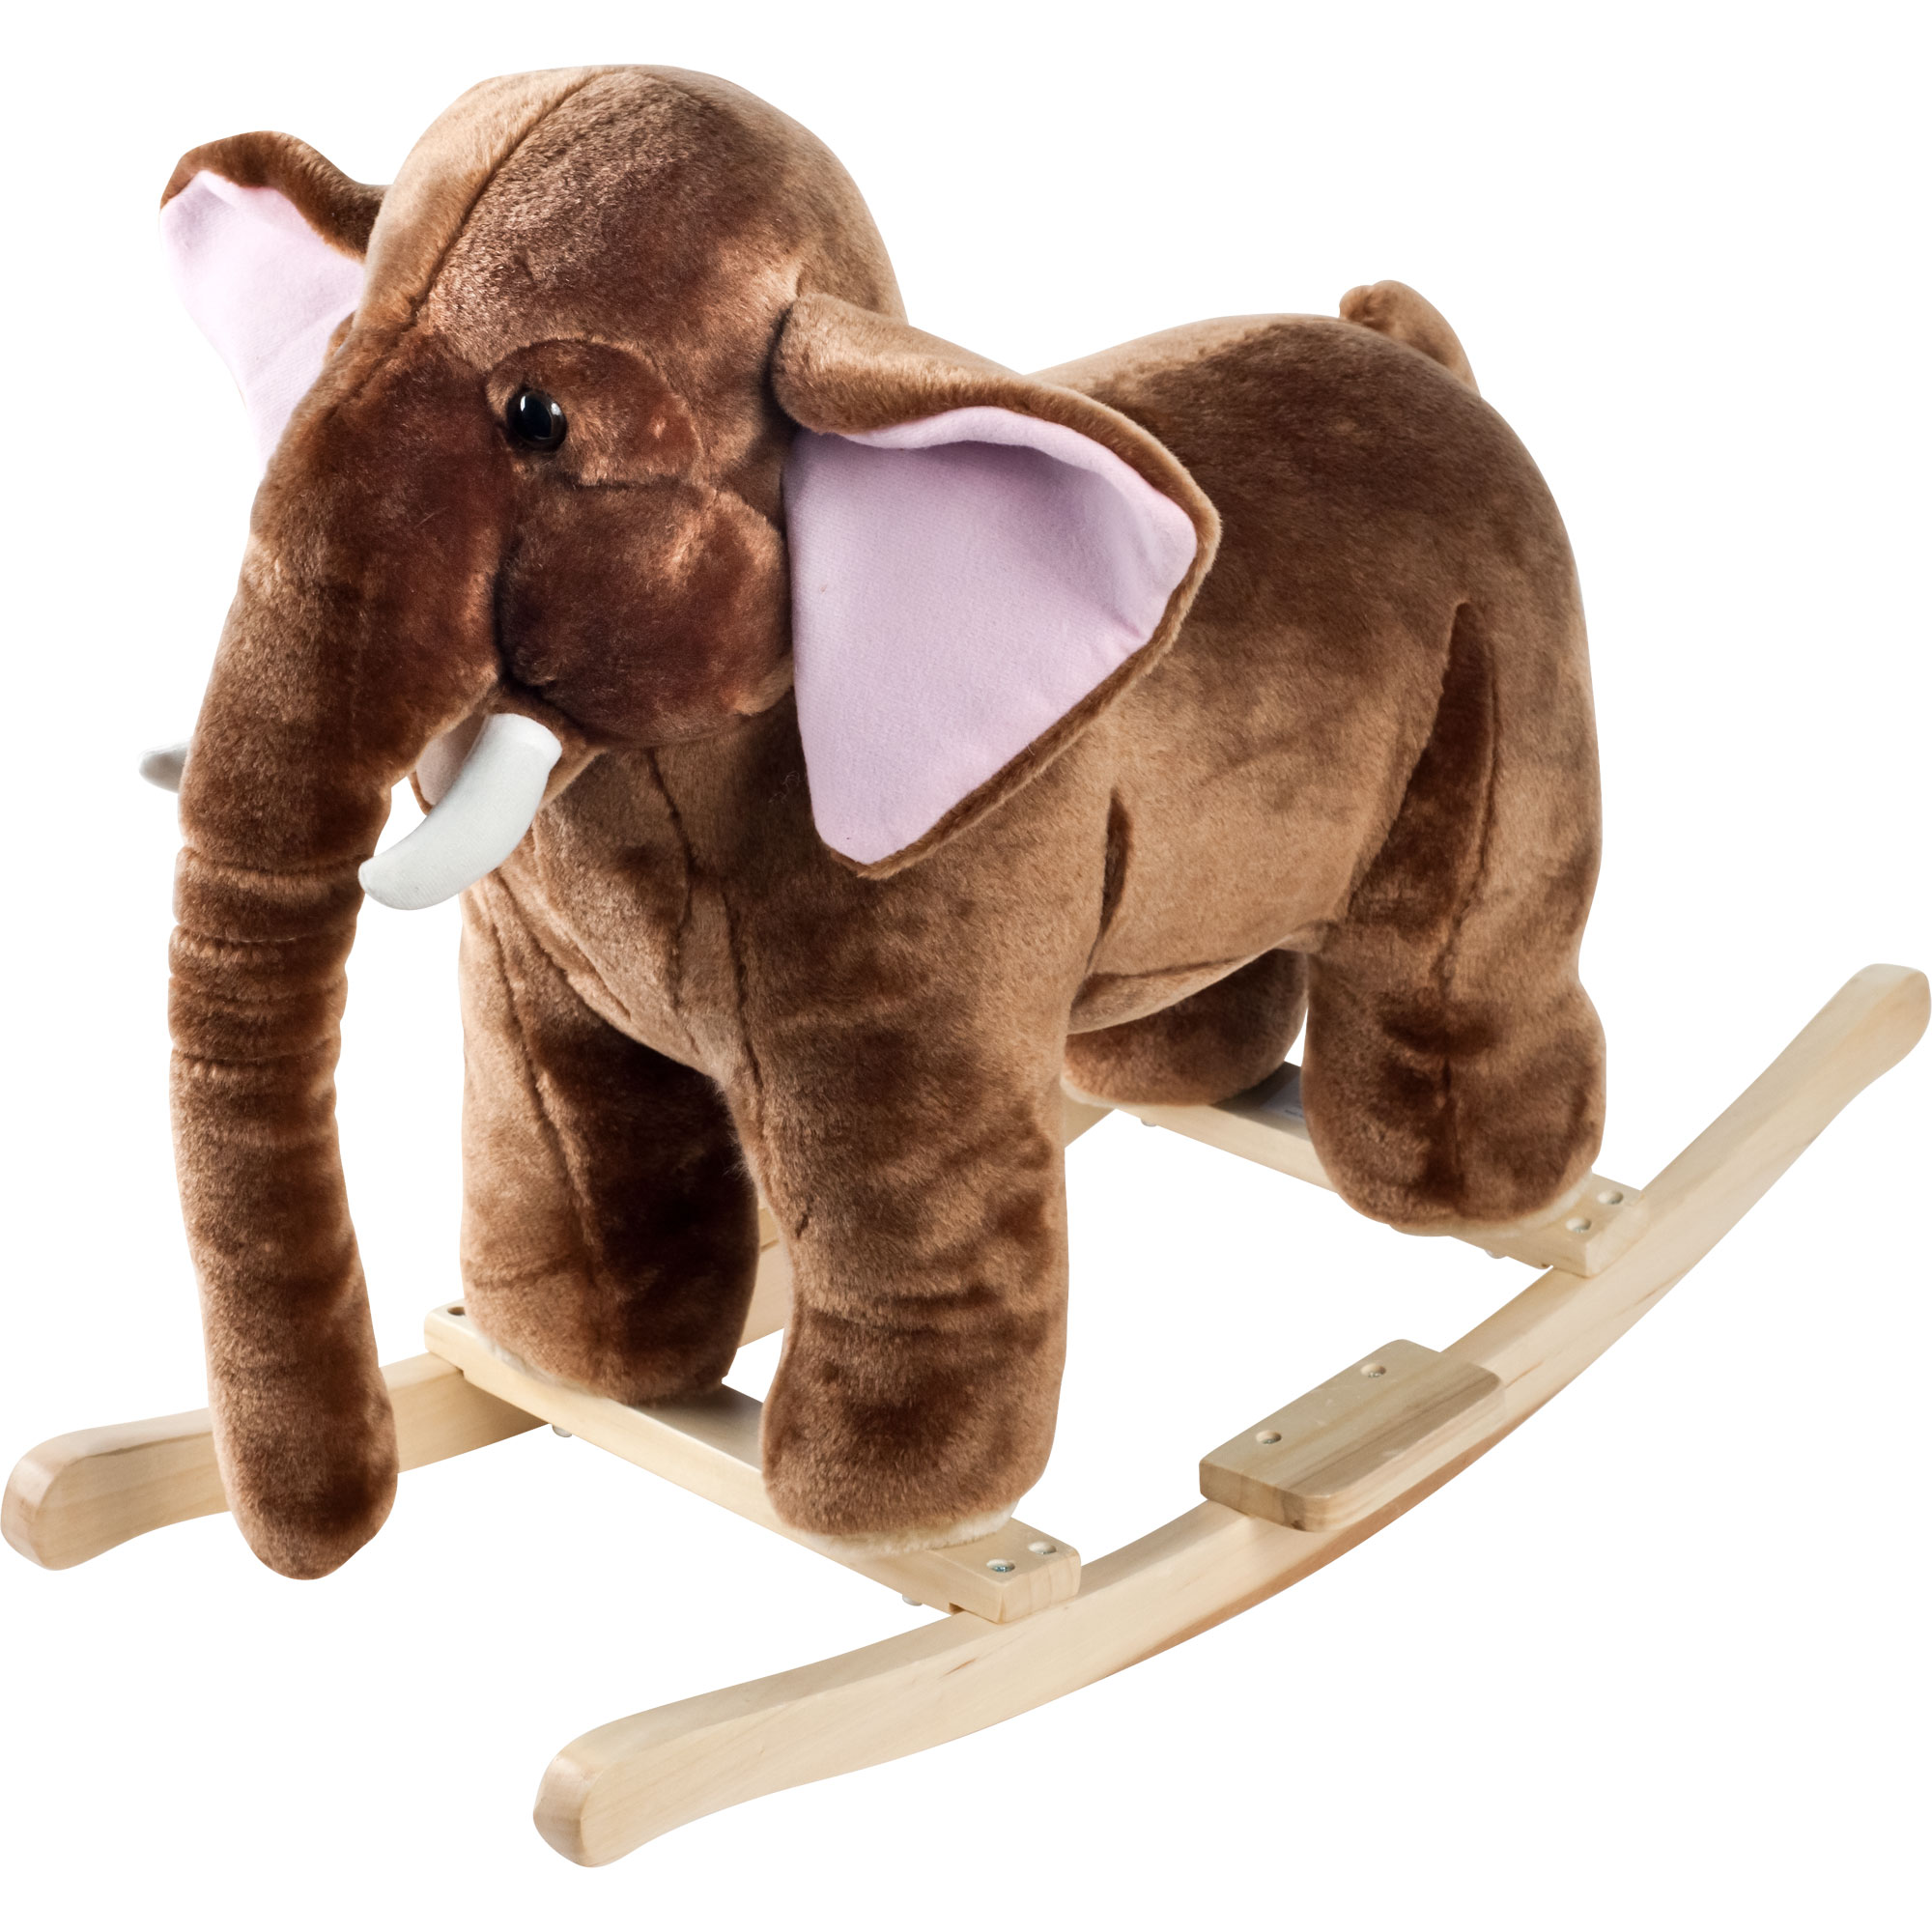 Elephant Plush Rocking Horse Animal Mo Mammoth with Sounds Ride On Toy by Happy Trails